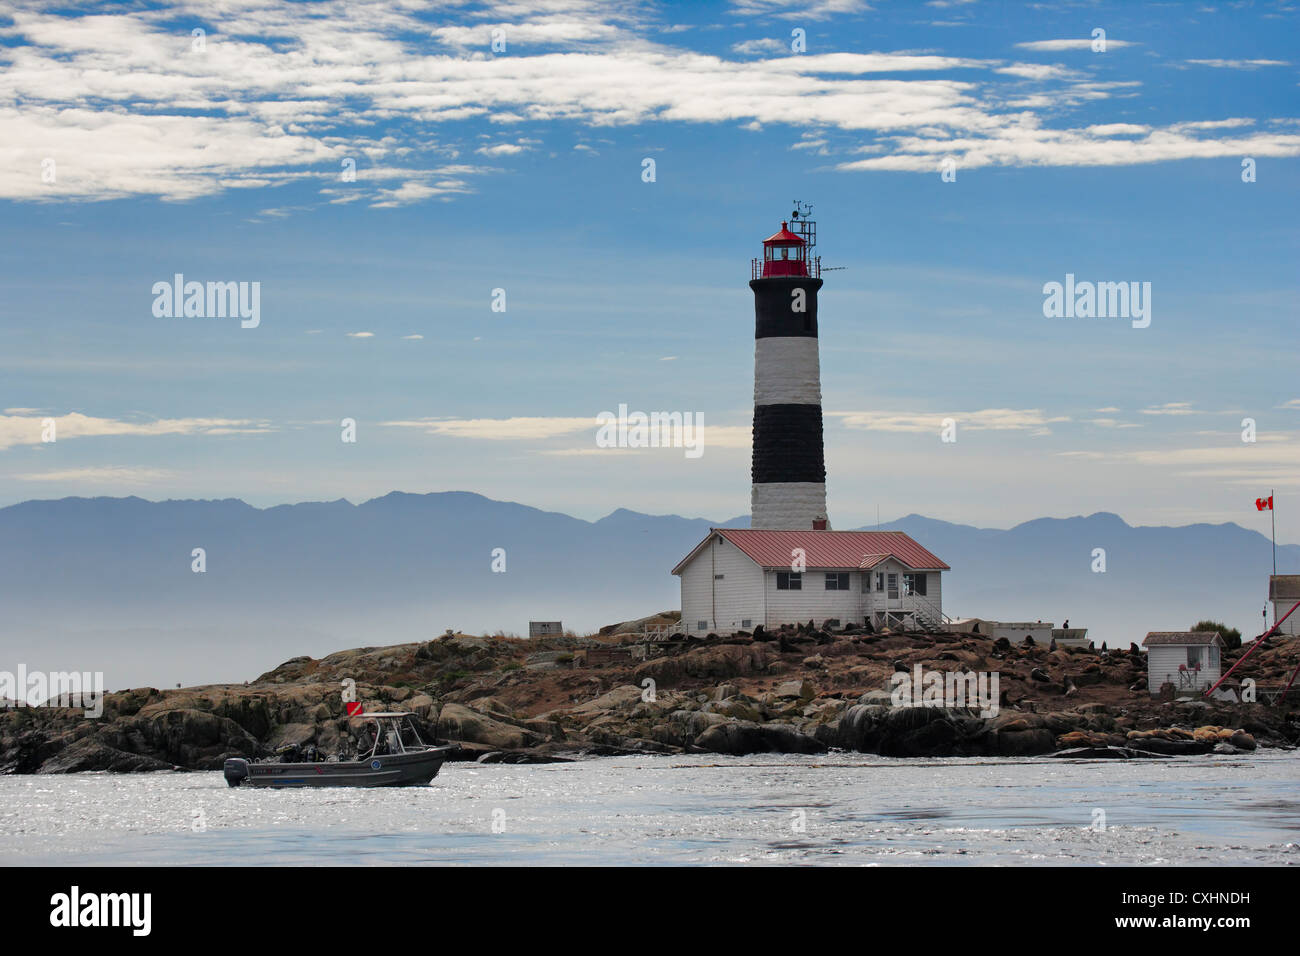 Race Rocks Lighthouse and Ecological reserve with scuba divers in boat-Victoria, Vancouver Island, British Columbia, - Stock Image